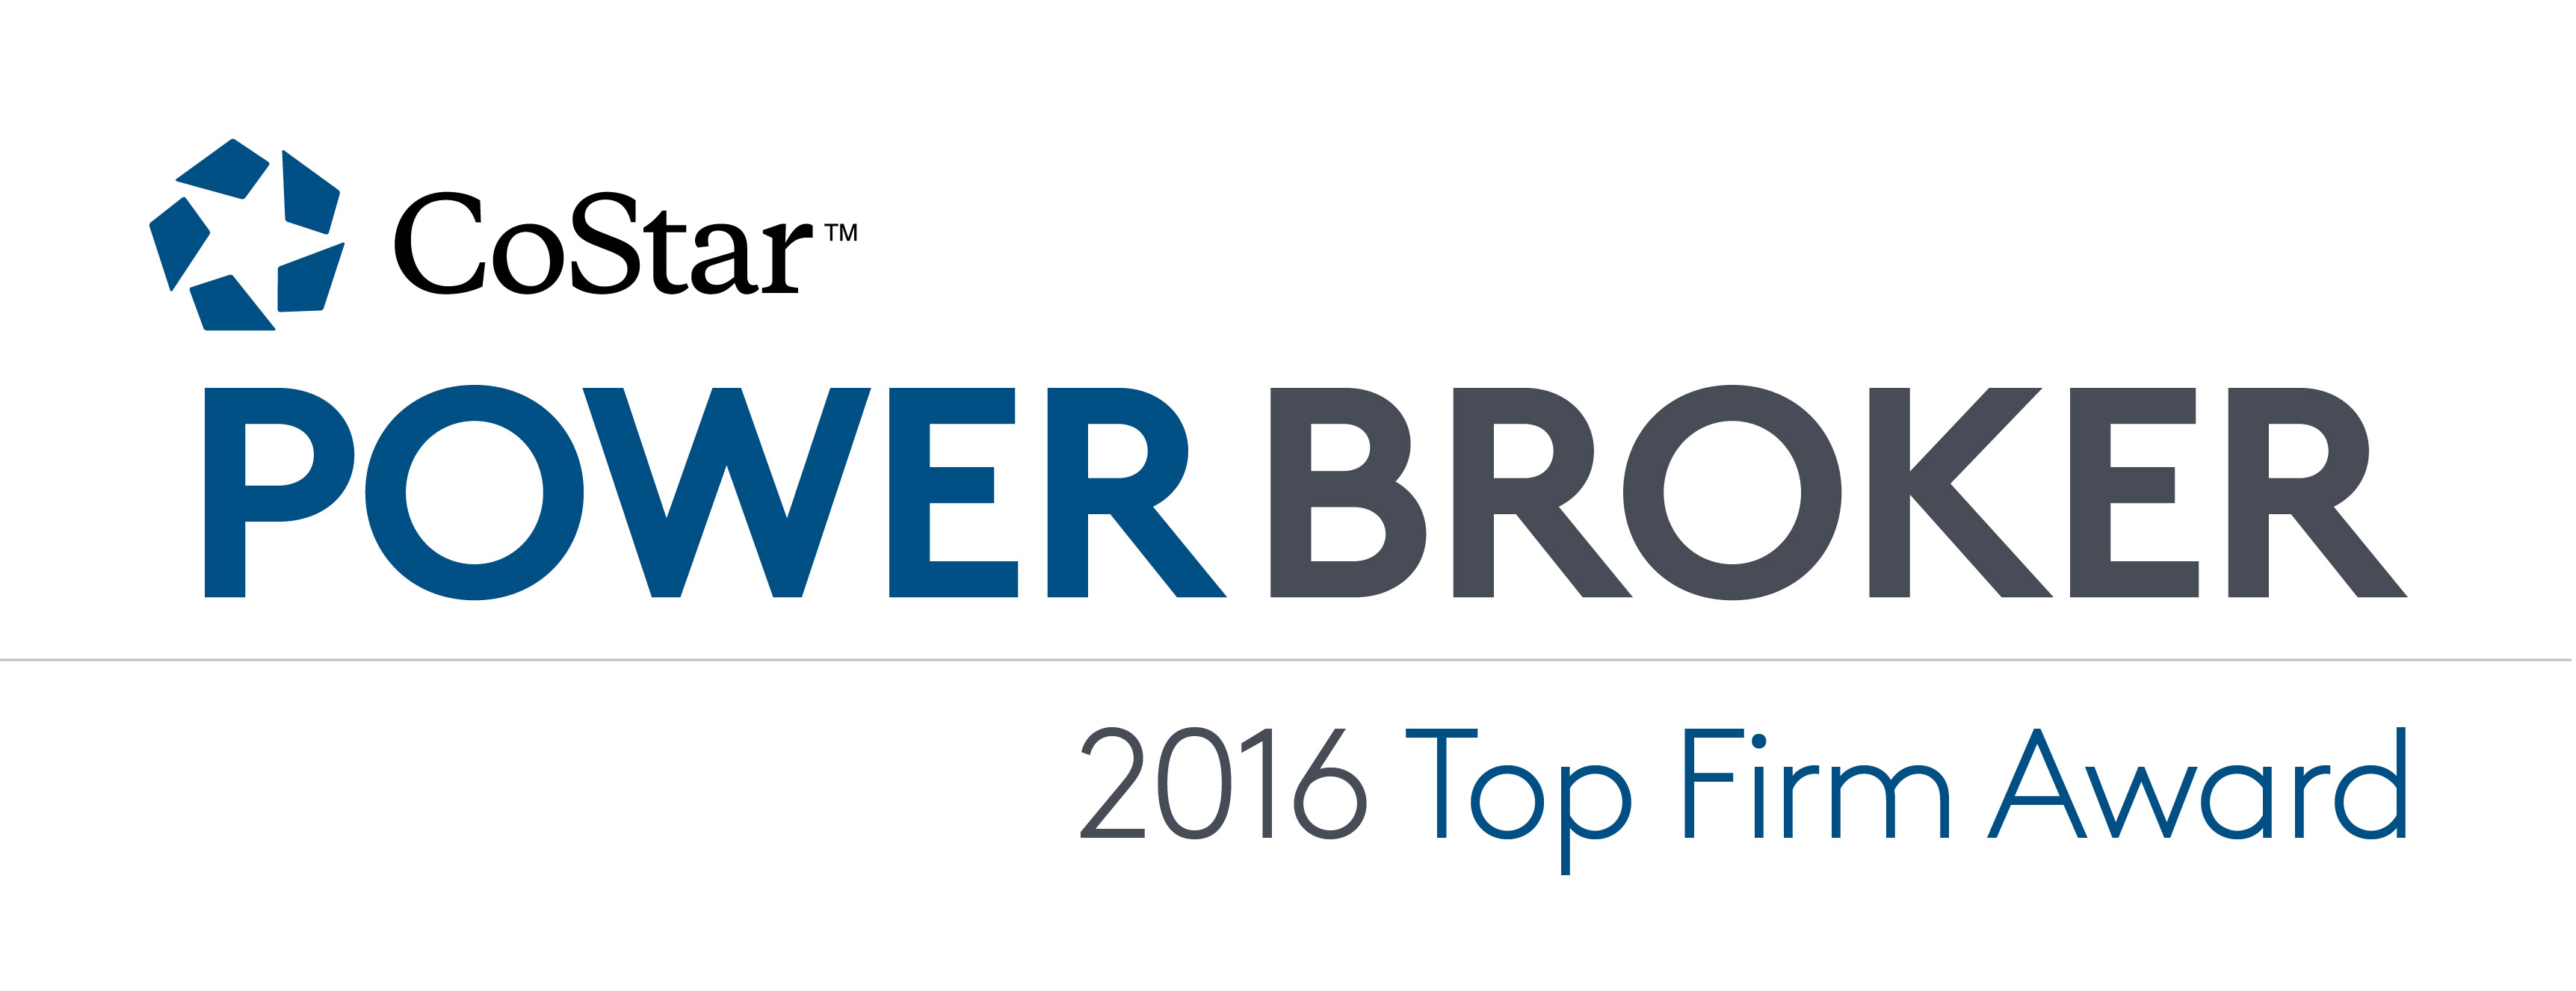 Goodman Real Estate Services Group LLC Honored with 2016 CoStar Power Broker Award